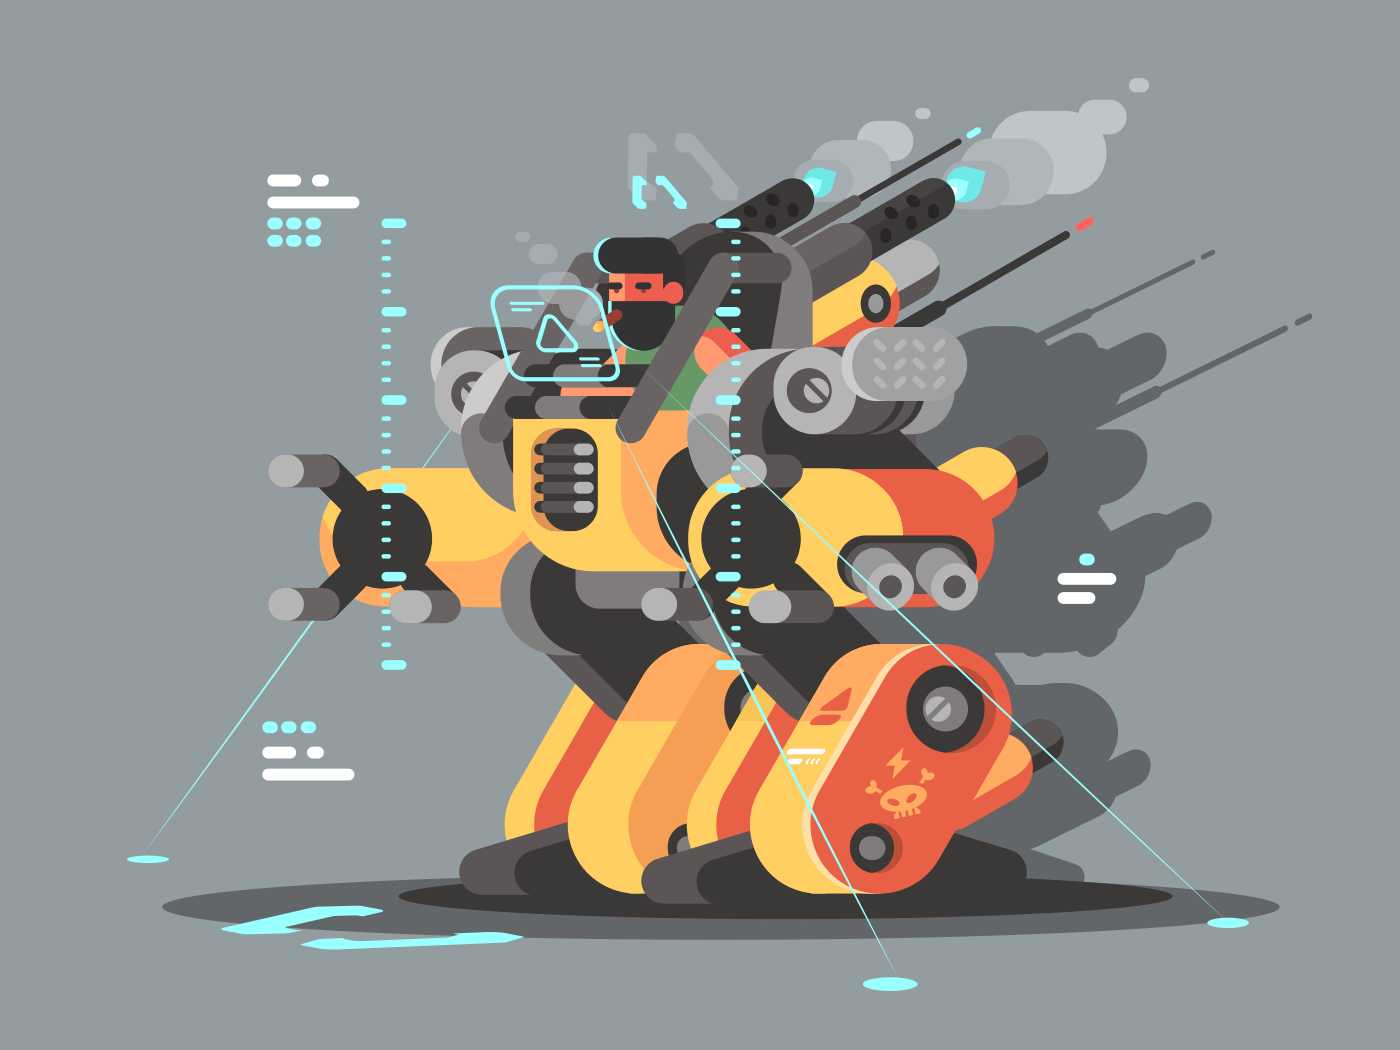 Exoskeleton innovative robot to help people with disabilities. Vector illustration